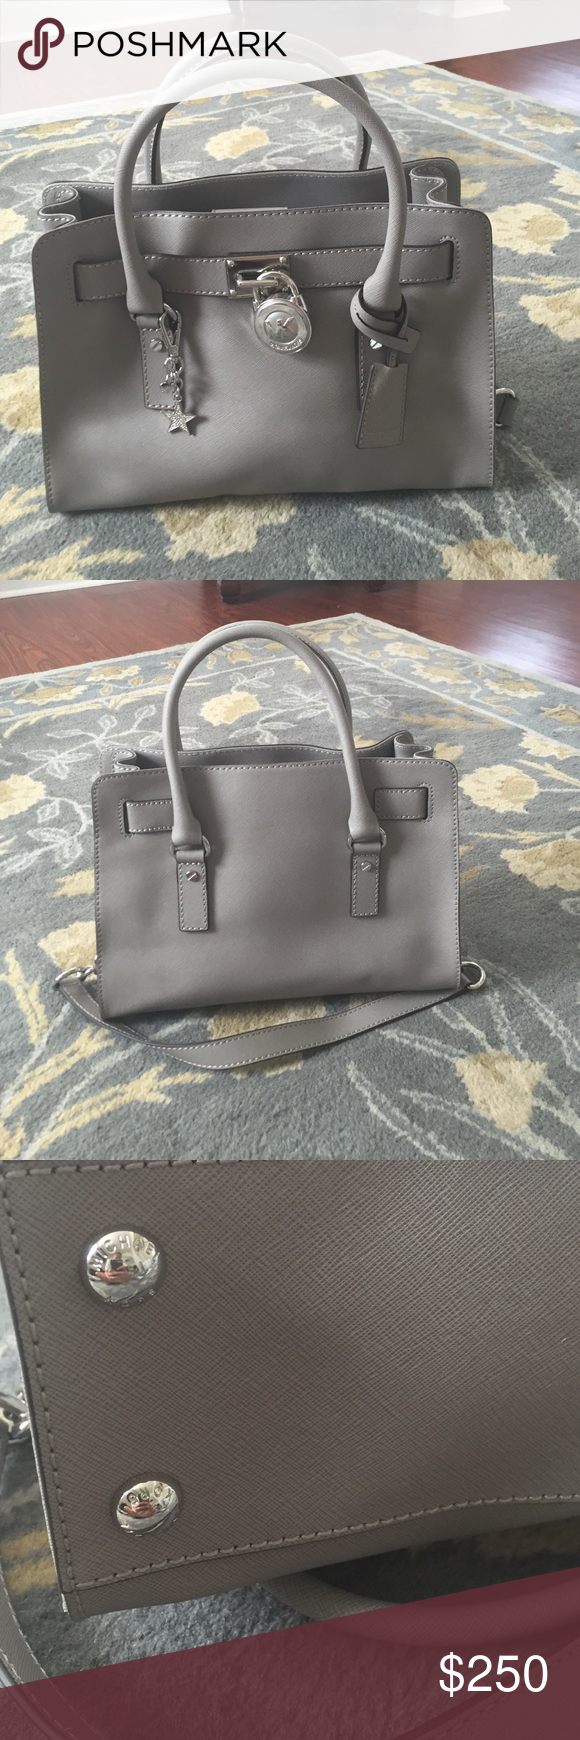 """Michael Kors, the East/West Hamilton satchel Nwot              Features: saffiano leather magnetic snap closure 2 slip pockets and 1 zip pocket inside approx. 12.75(L) x 9(H) x 5.5(D)""""; 5"""" approx. handle drop Imported. Also comes with a Michael Kors star tag that I added on to use with it, but the bag never left the house because I prefer giant bags! Purchased from Macy's and can provide receipt if needed. Michael Kors Bags Satchels"""